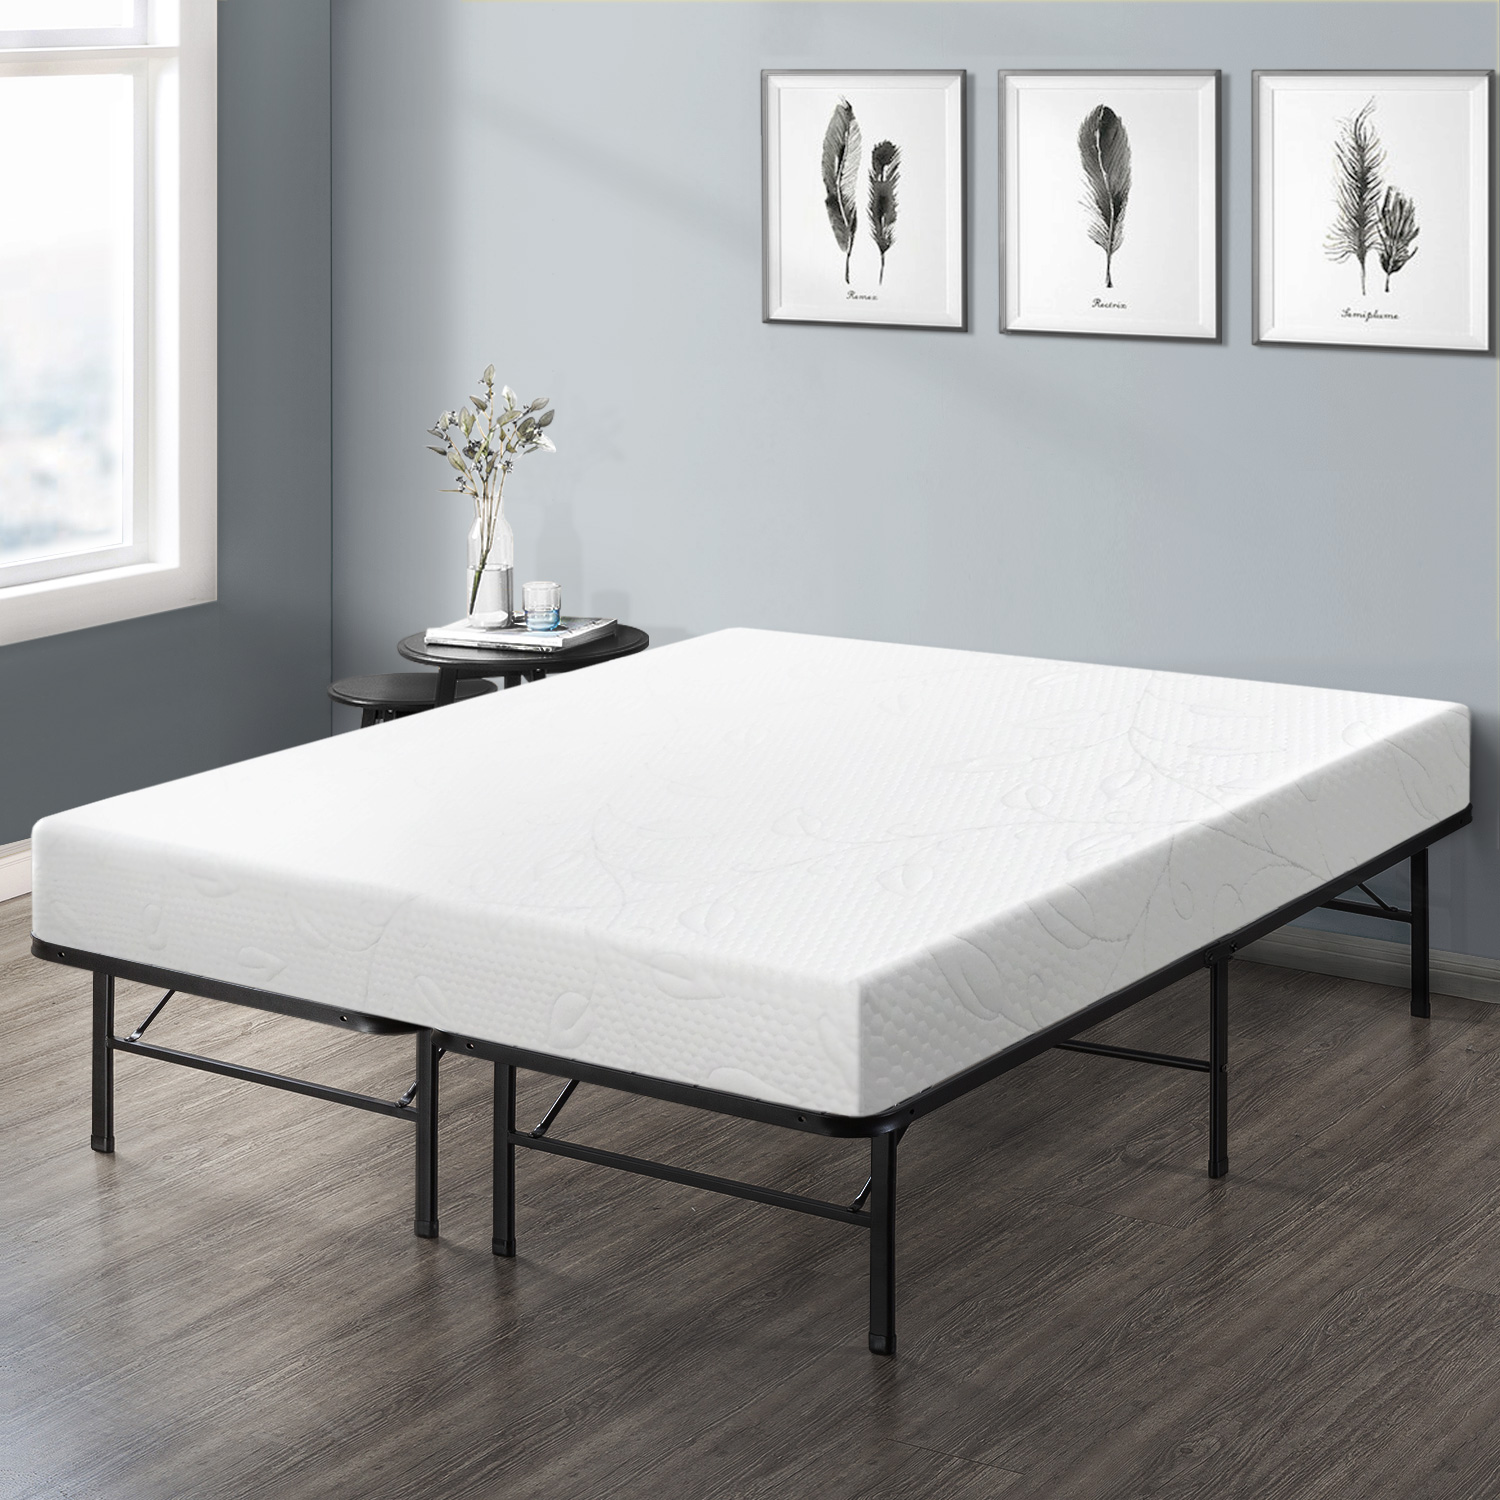 Best Price Mattress 8 Inch Air Flow Memory Foam Mattress and 14 Inch Steel Platform Bed Frame Set, Twin